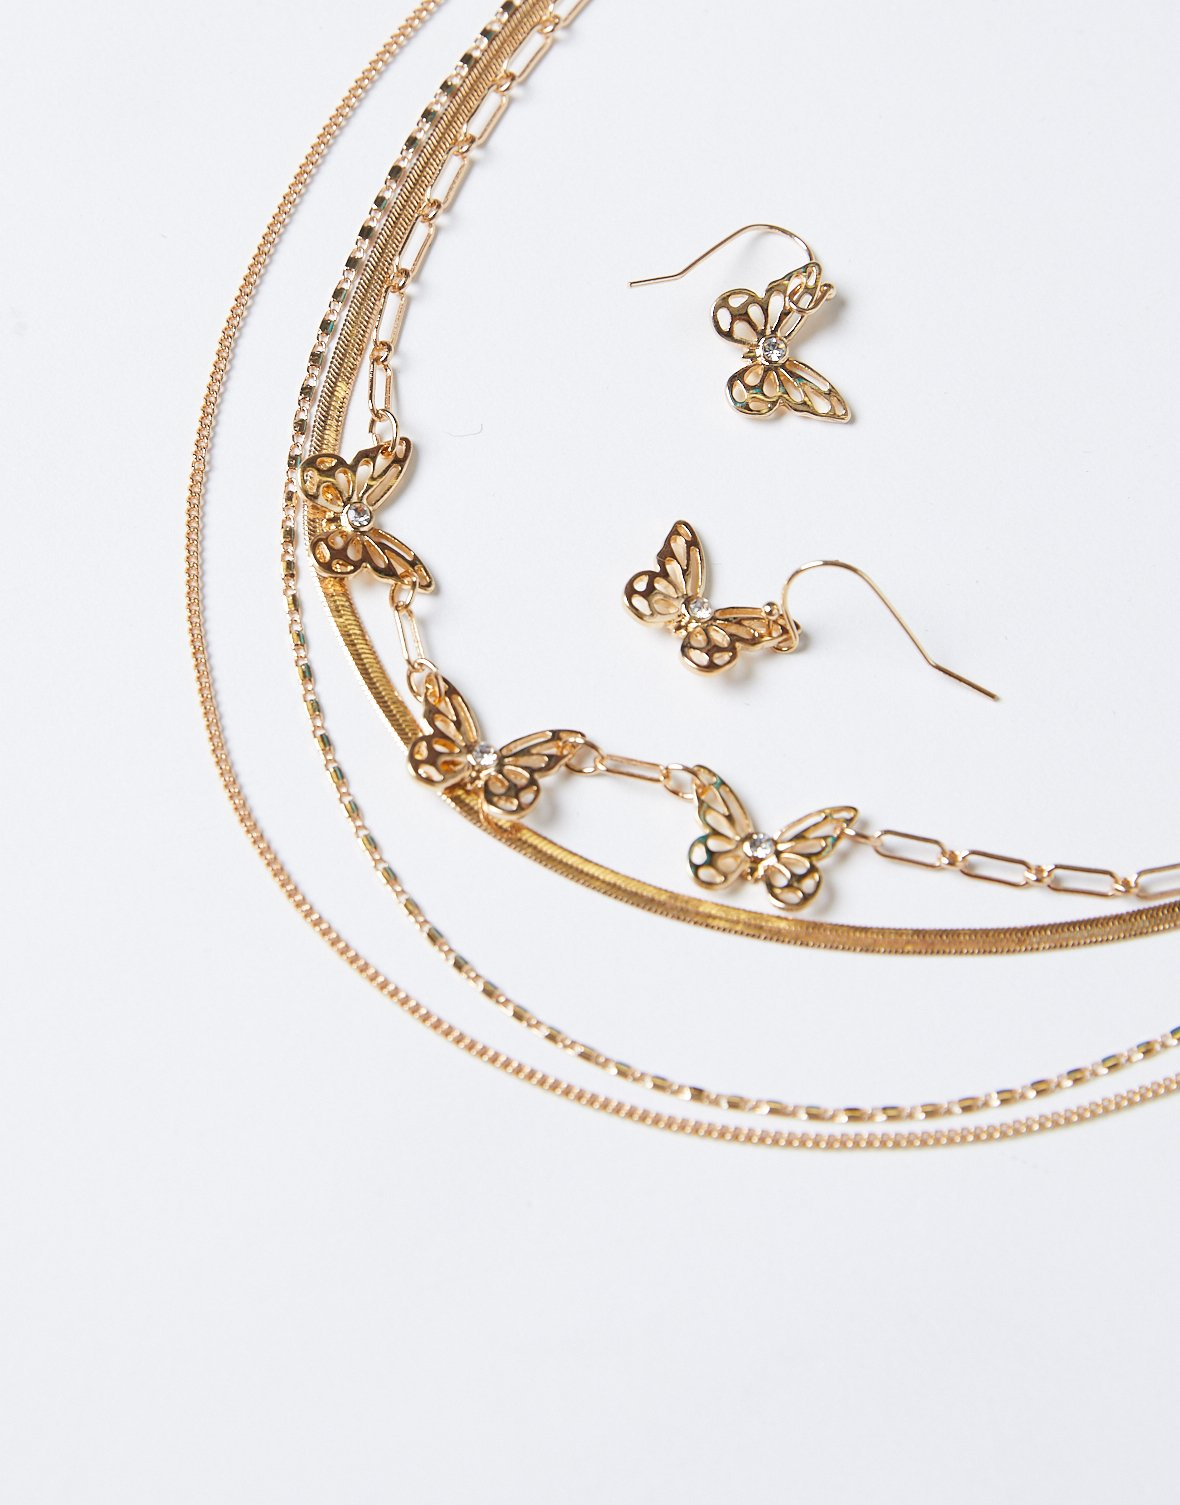 Alexandra Layered Necklace and Earrings Set